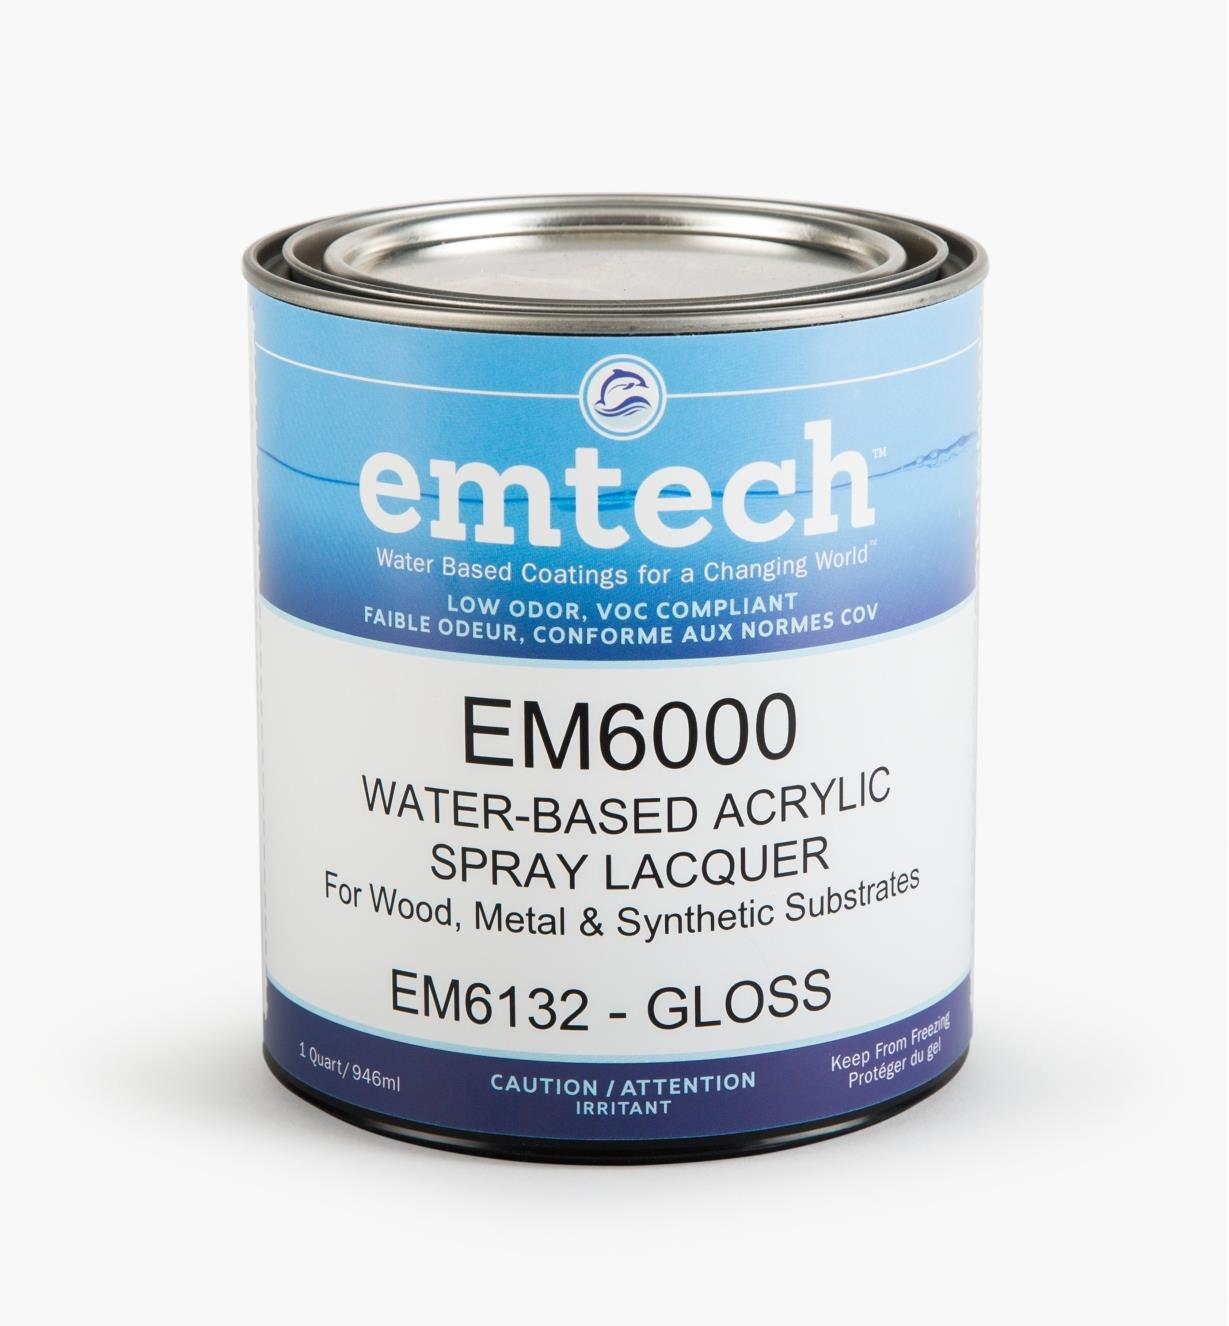 56Z1914 - Emtech Water-Based Gloss Lacquer, Quart